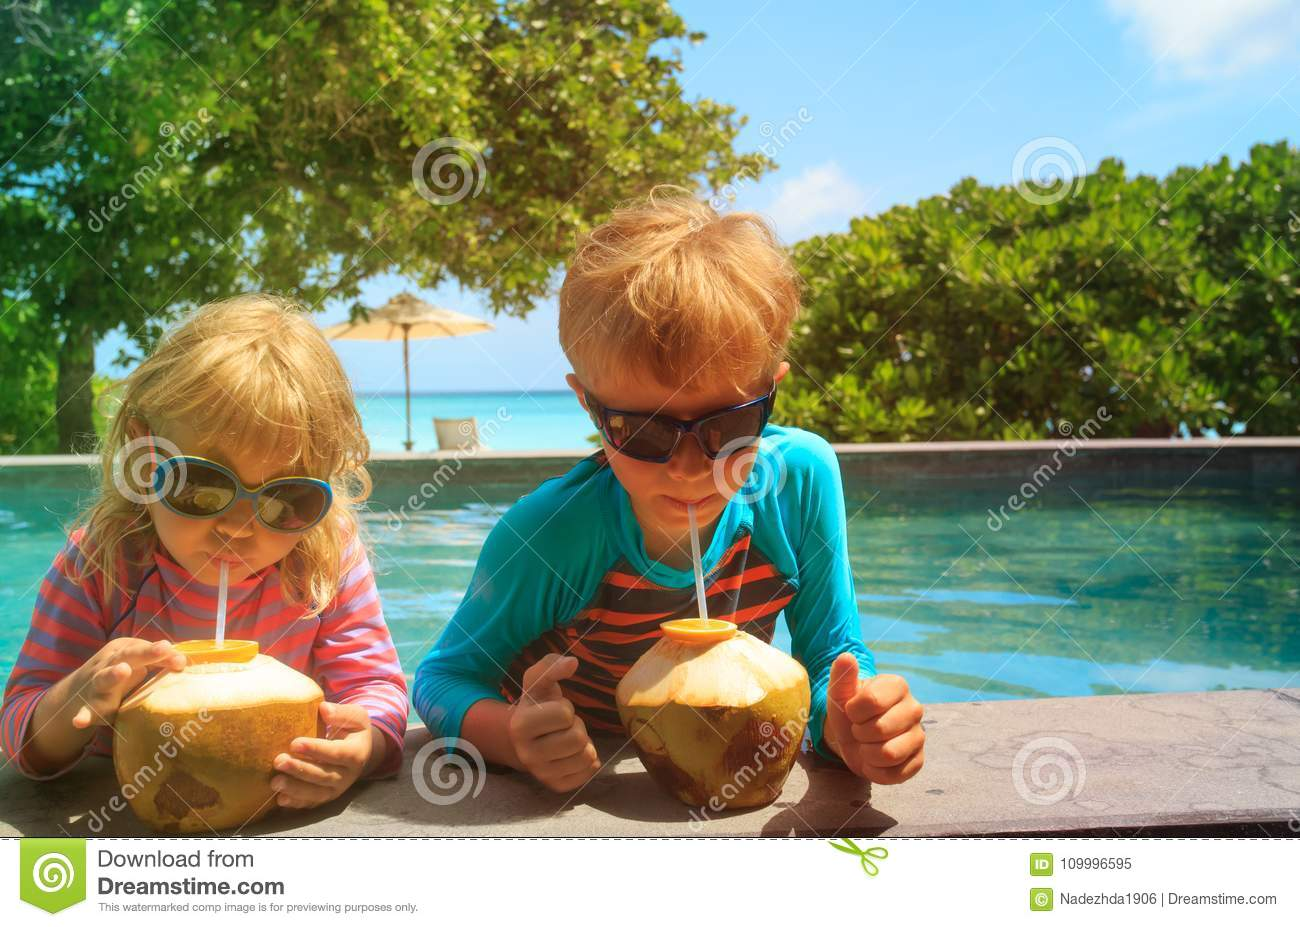 Little boy and girl drinking coconut cocktail on beach resort